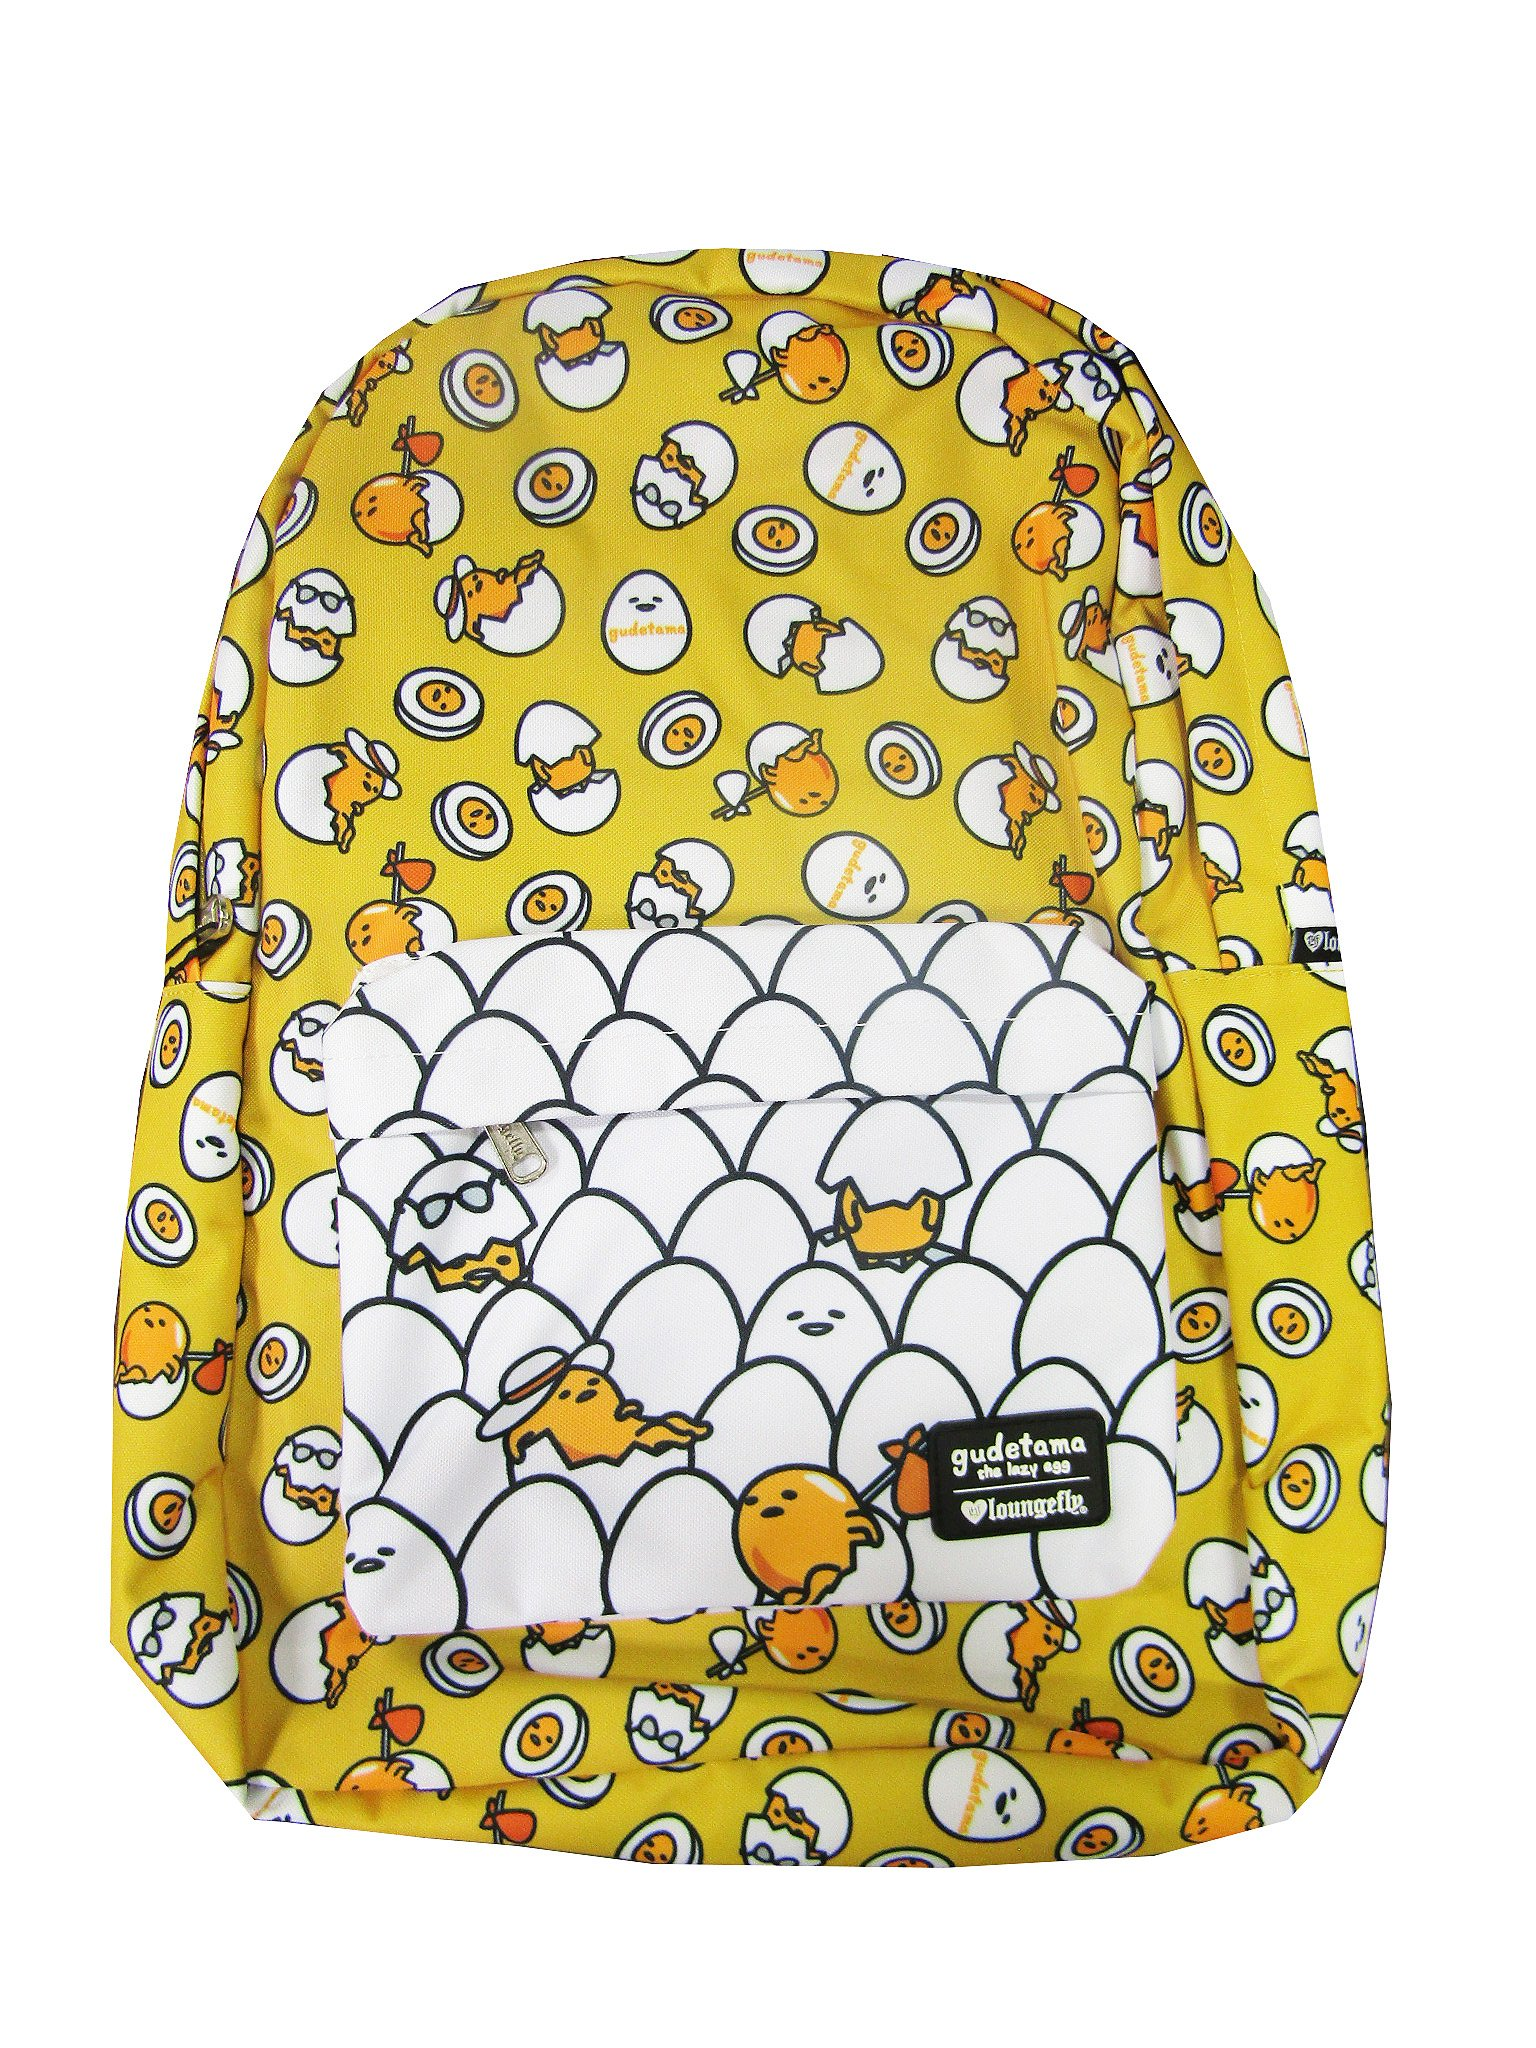 Loungefly Gudetama Multi Pose Print Nylon Backpack (One Size, Yellow)